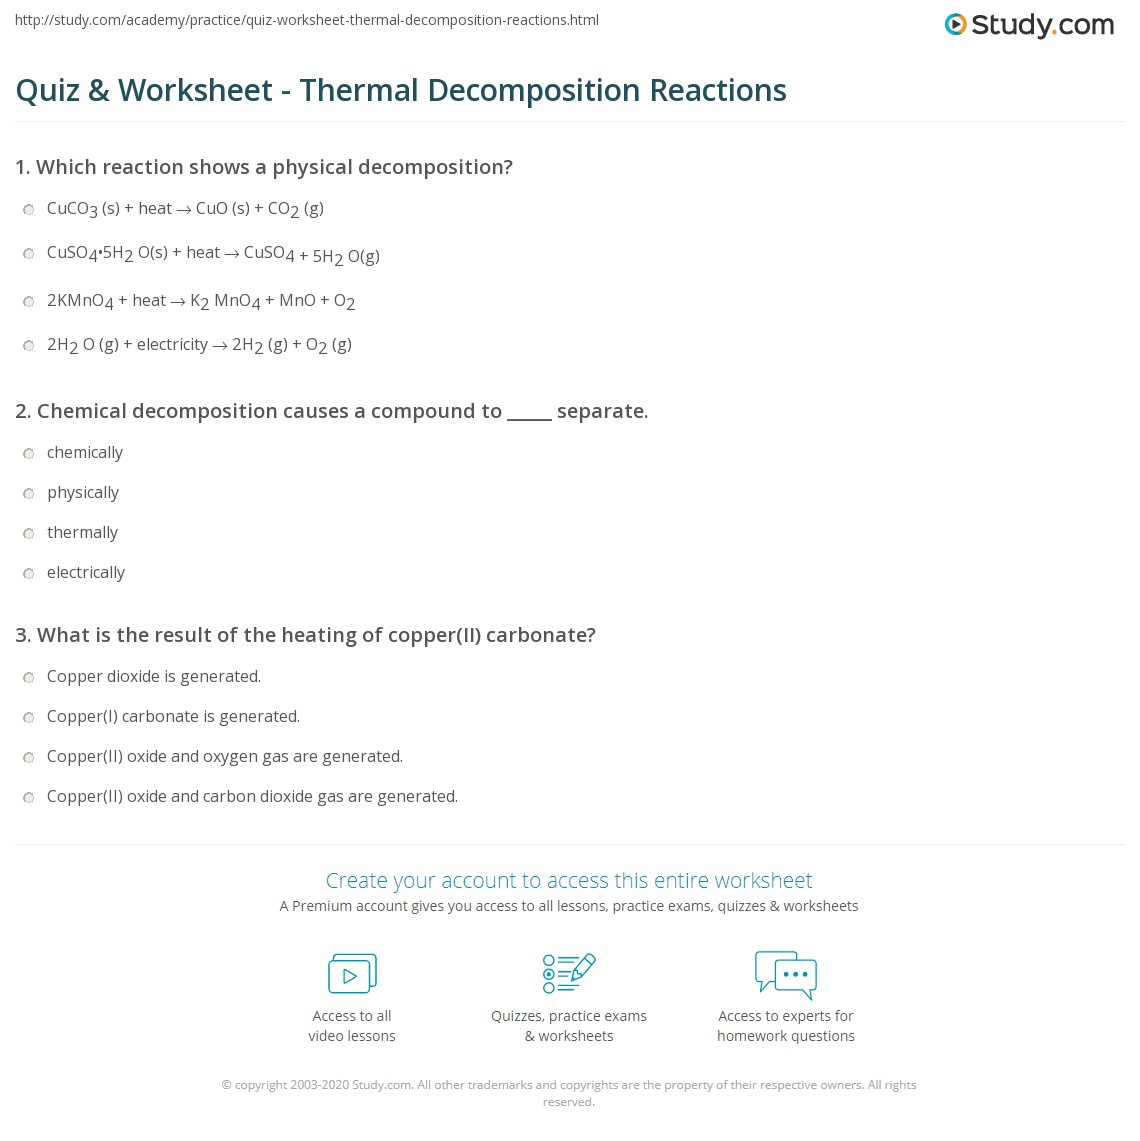 Decomposition reaction worksheet 1